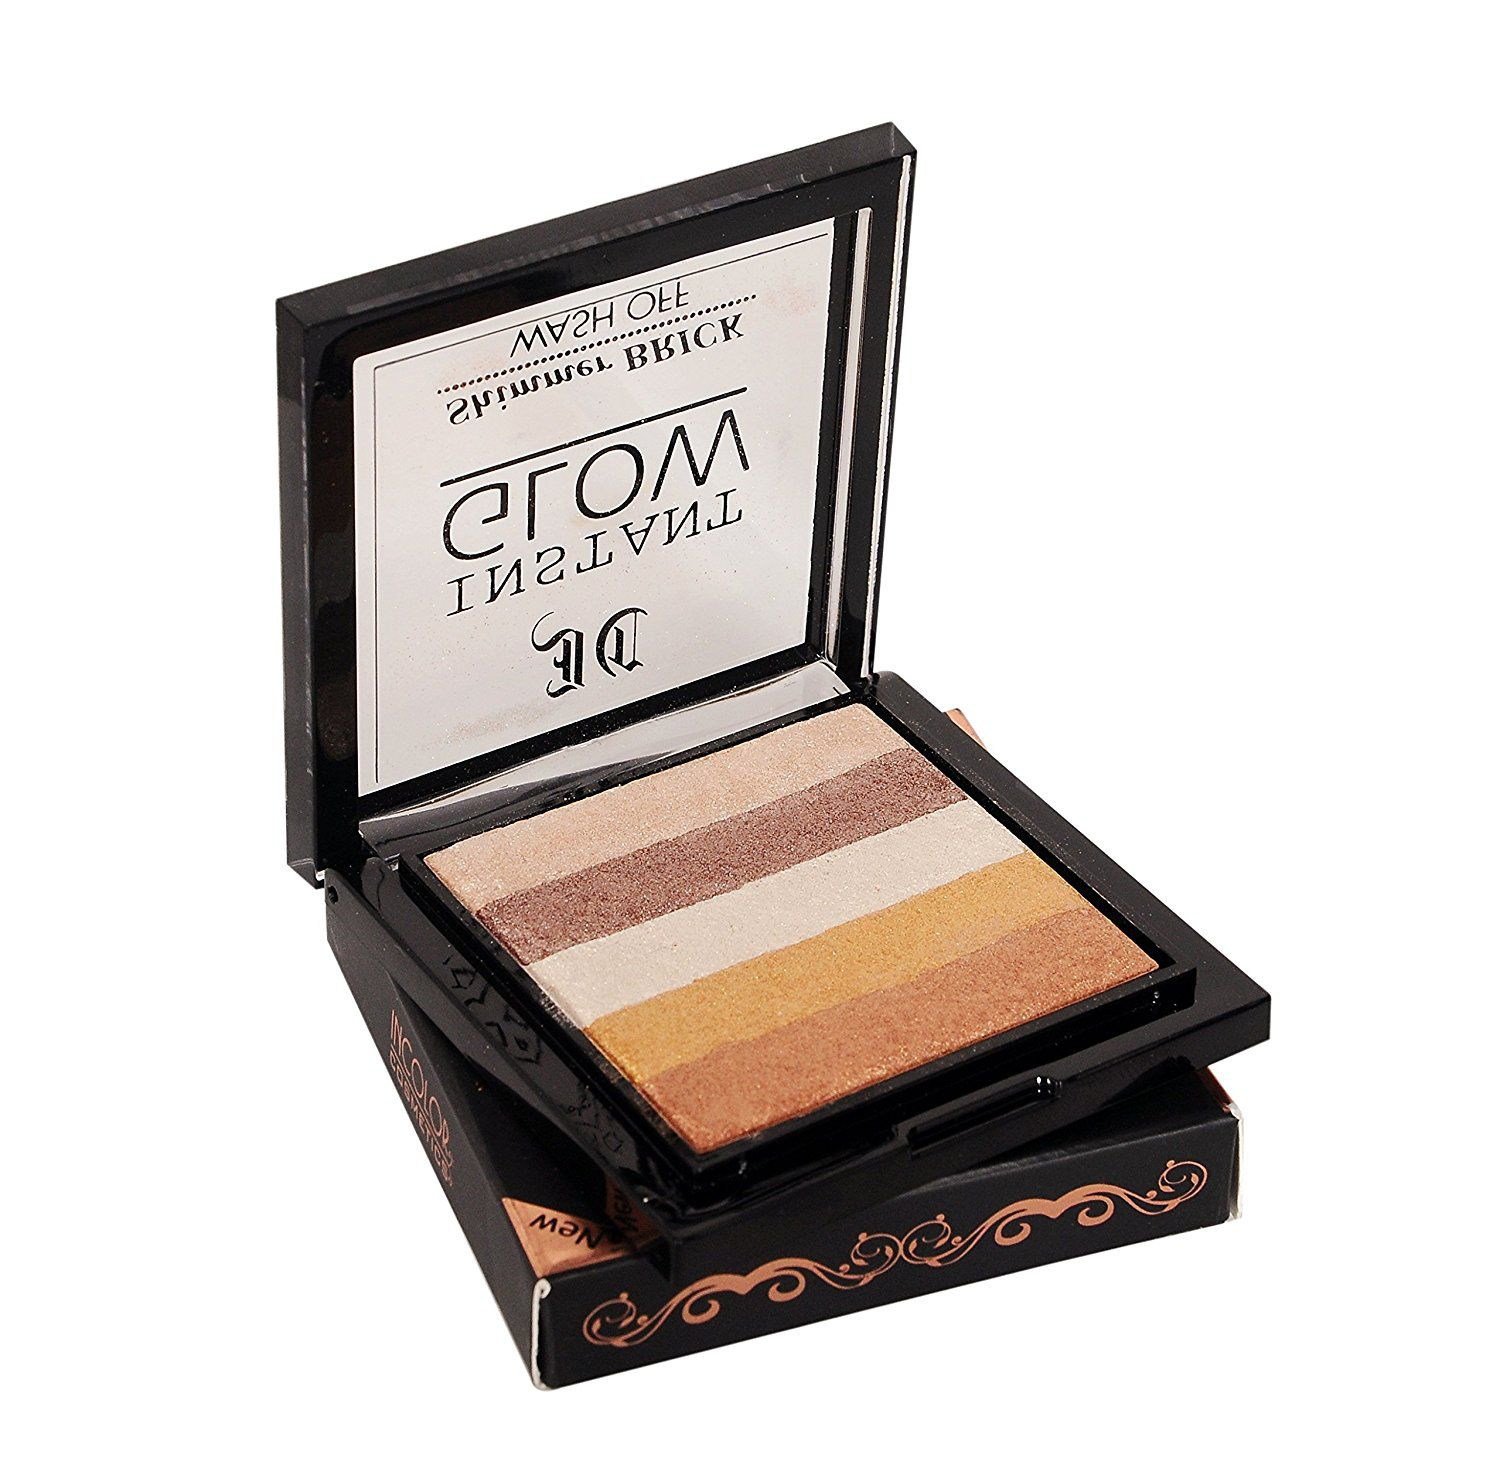 c4bfdf676 Incolor Instant Glow Shimmer Bricks Highlighter 05 4 gm  Buy Incolor  Instant Glow Shimmer Bricks Highlighter 05 4 gm at Best Prices in India -  Snapdeal